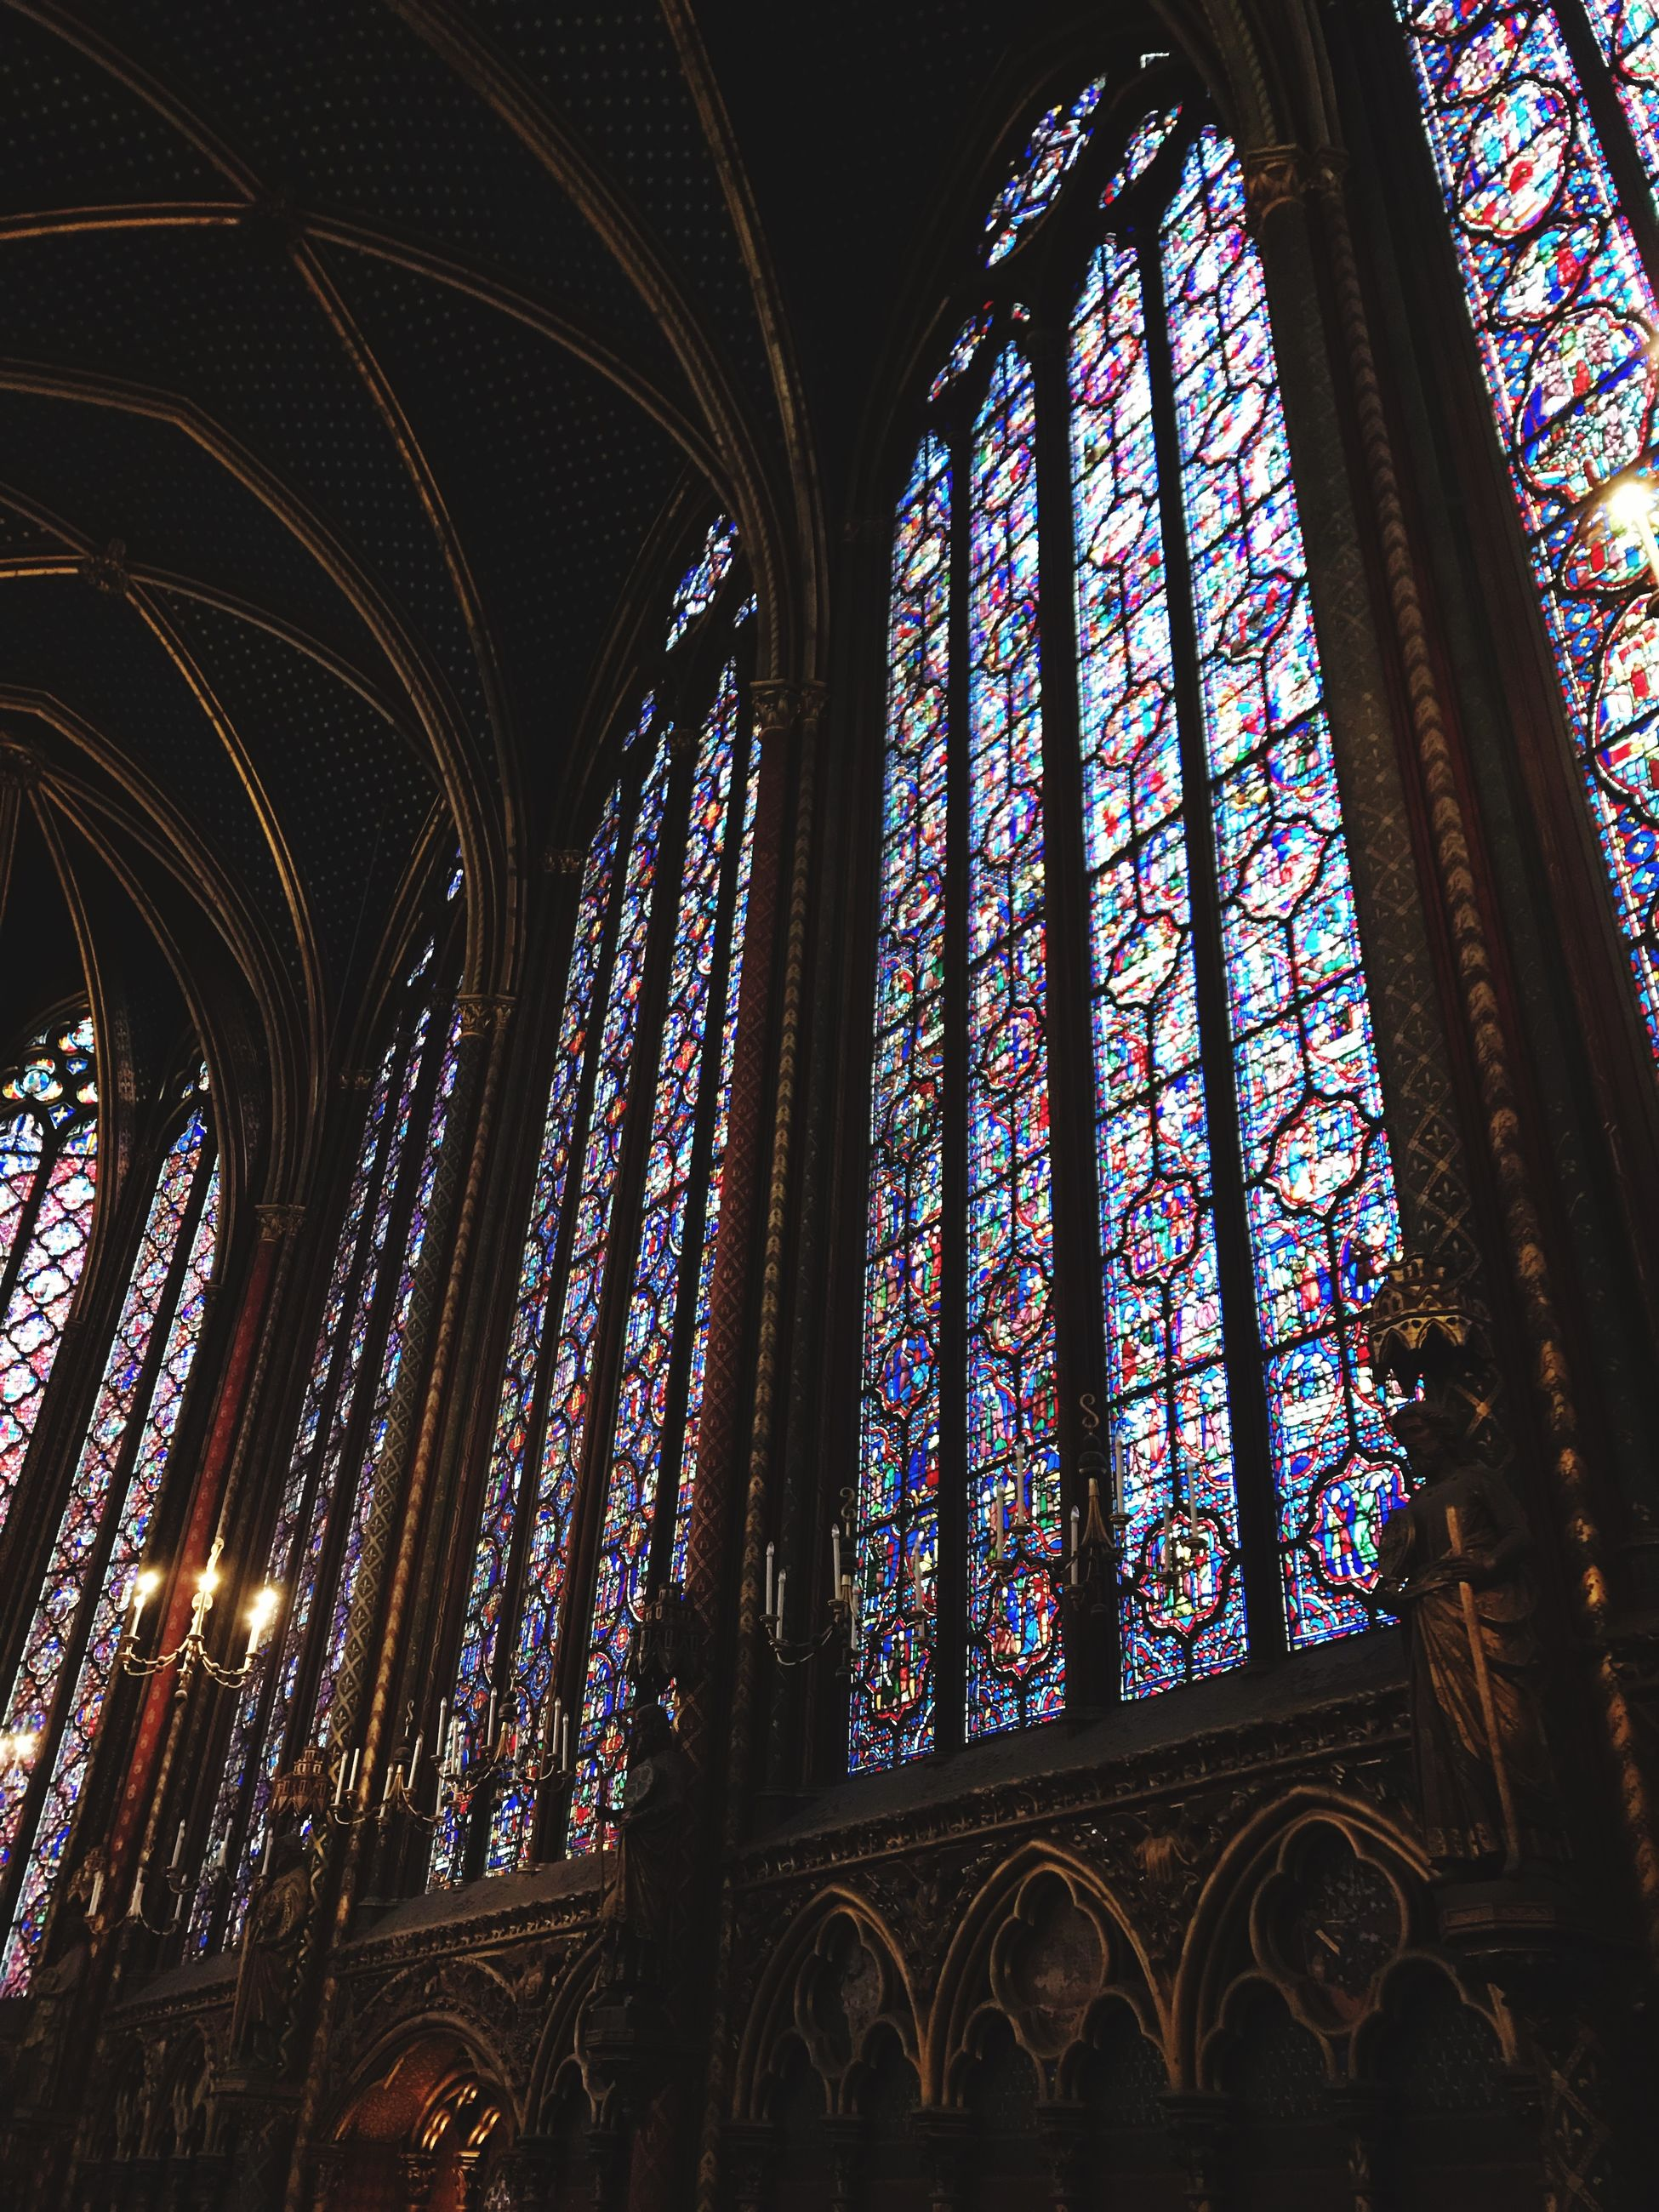 religion, place of worship, spirituality, stained glass, architecture, indoors, rose window, window, built structure, low angle view, no people, cross, day, multi colored